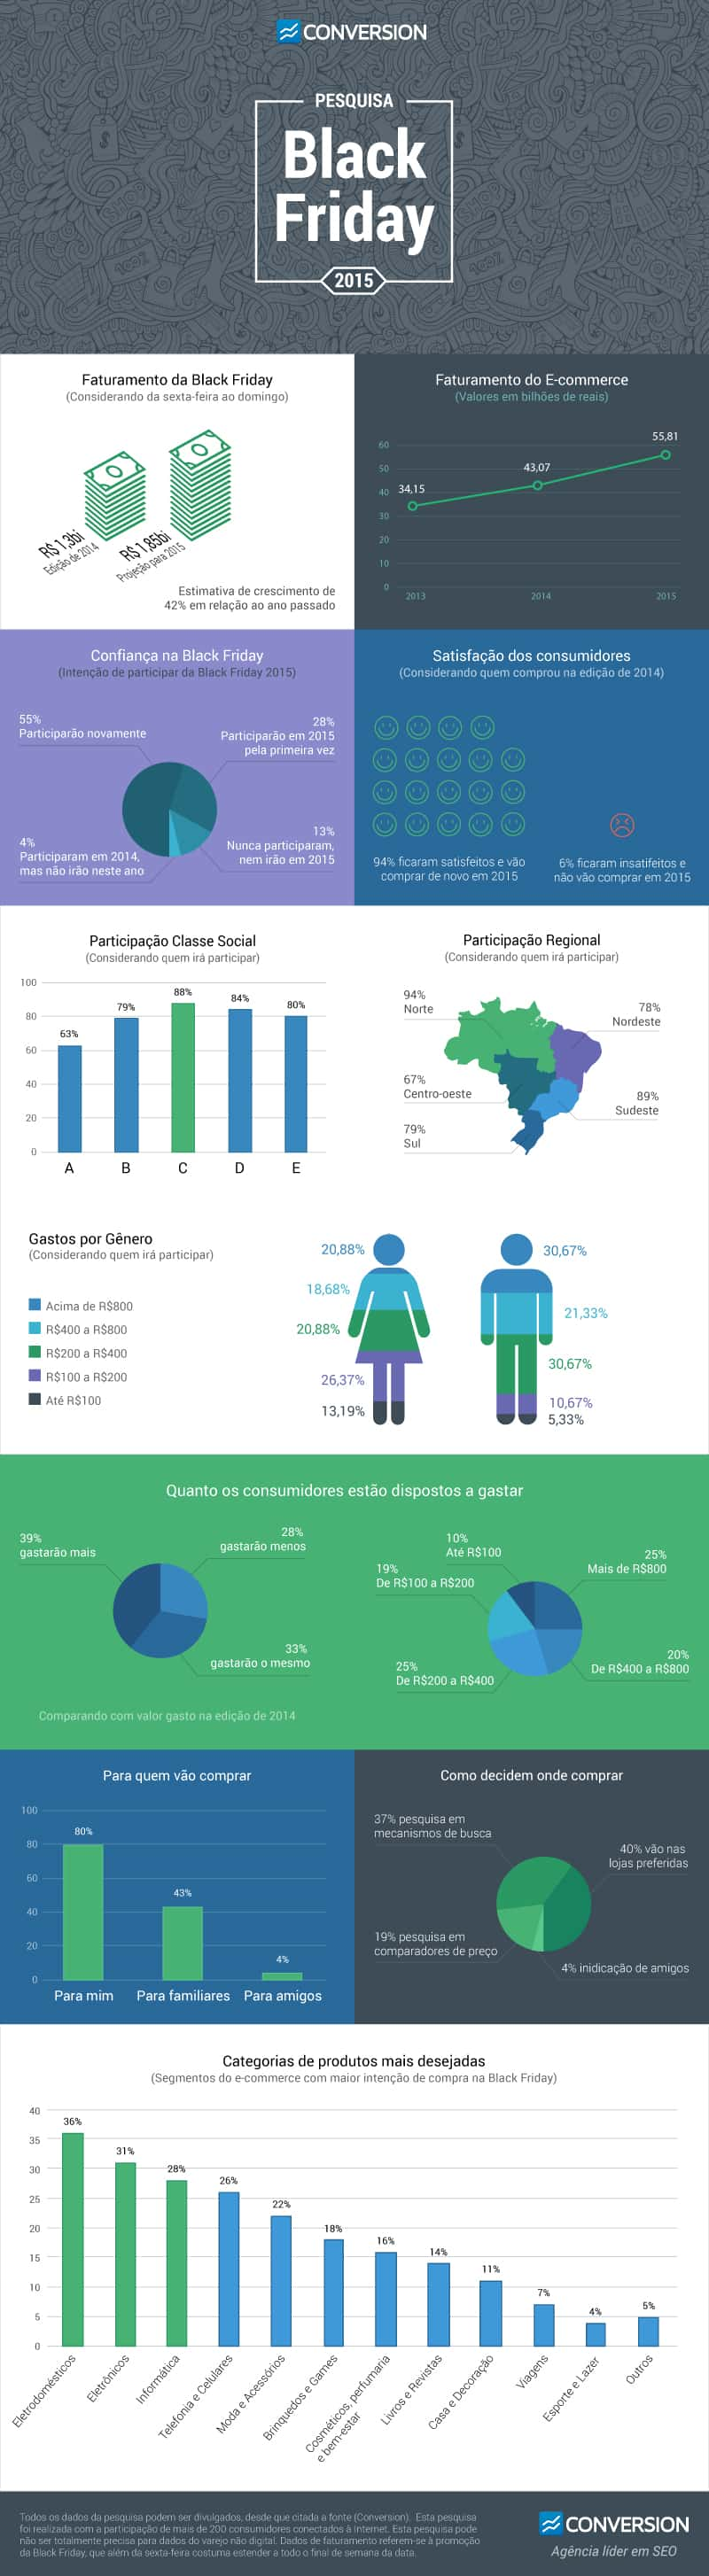 Infográfico Black Friday 2015 - Pesquisa Conversion